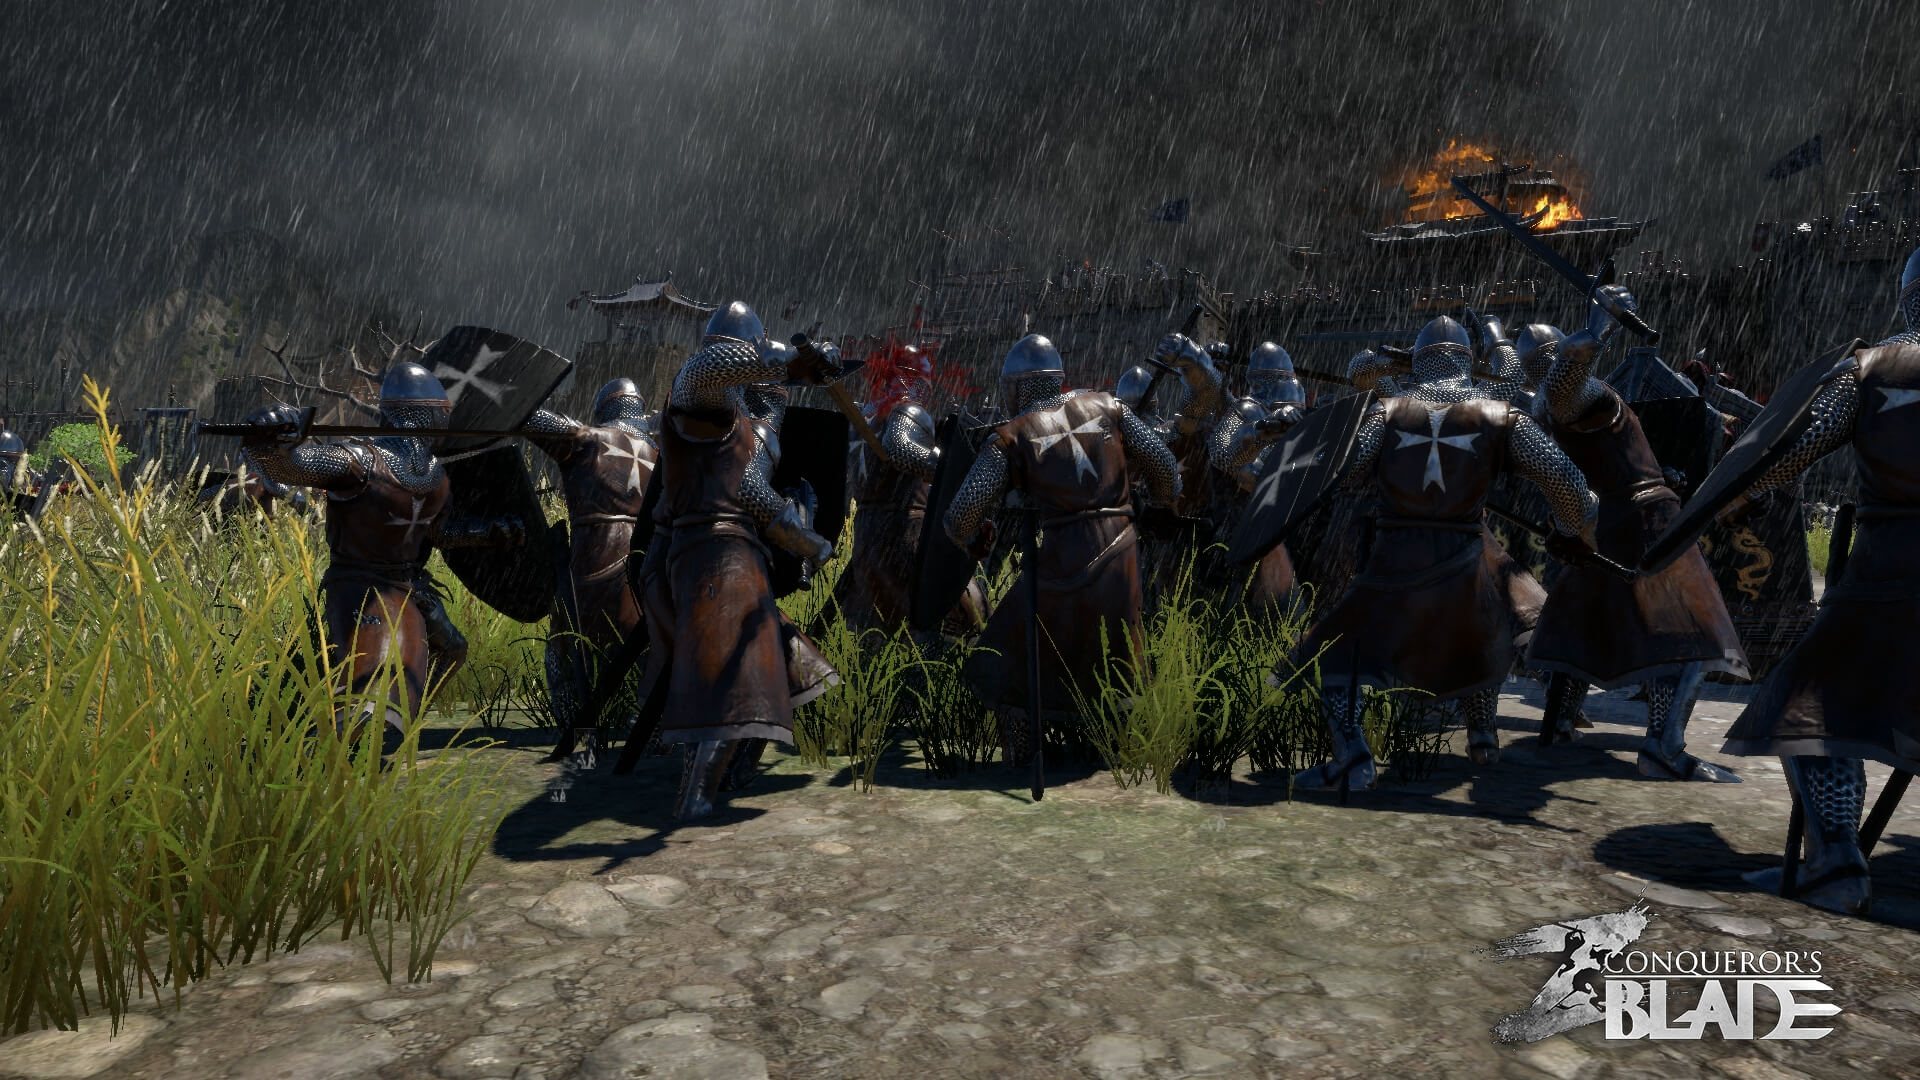 Conqueror's Blade Screenshot 2